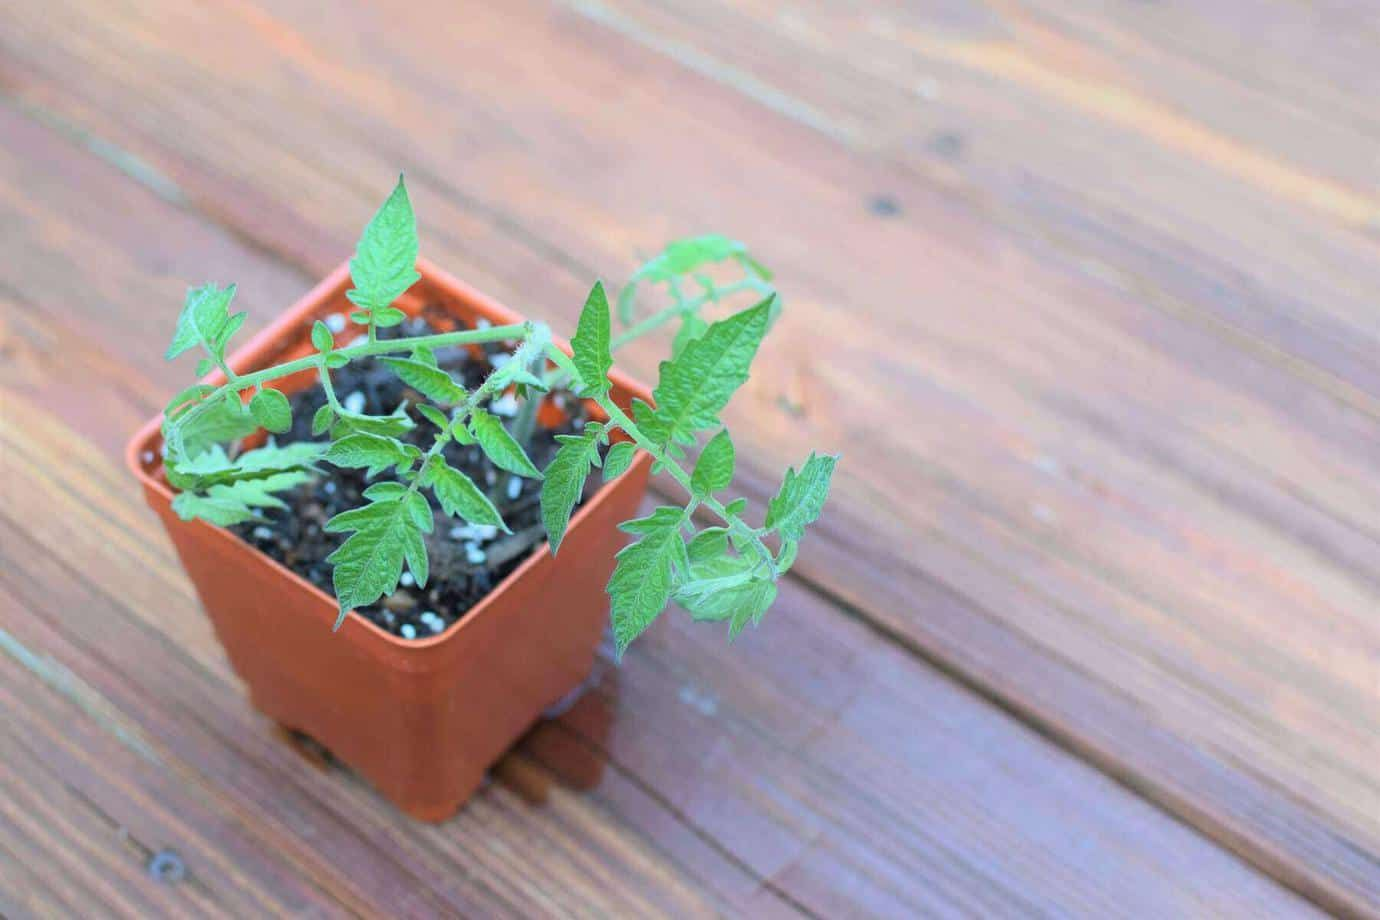 How to clone tomato plants from cuttings